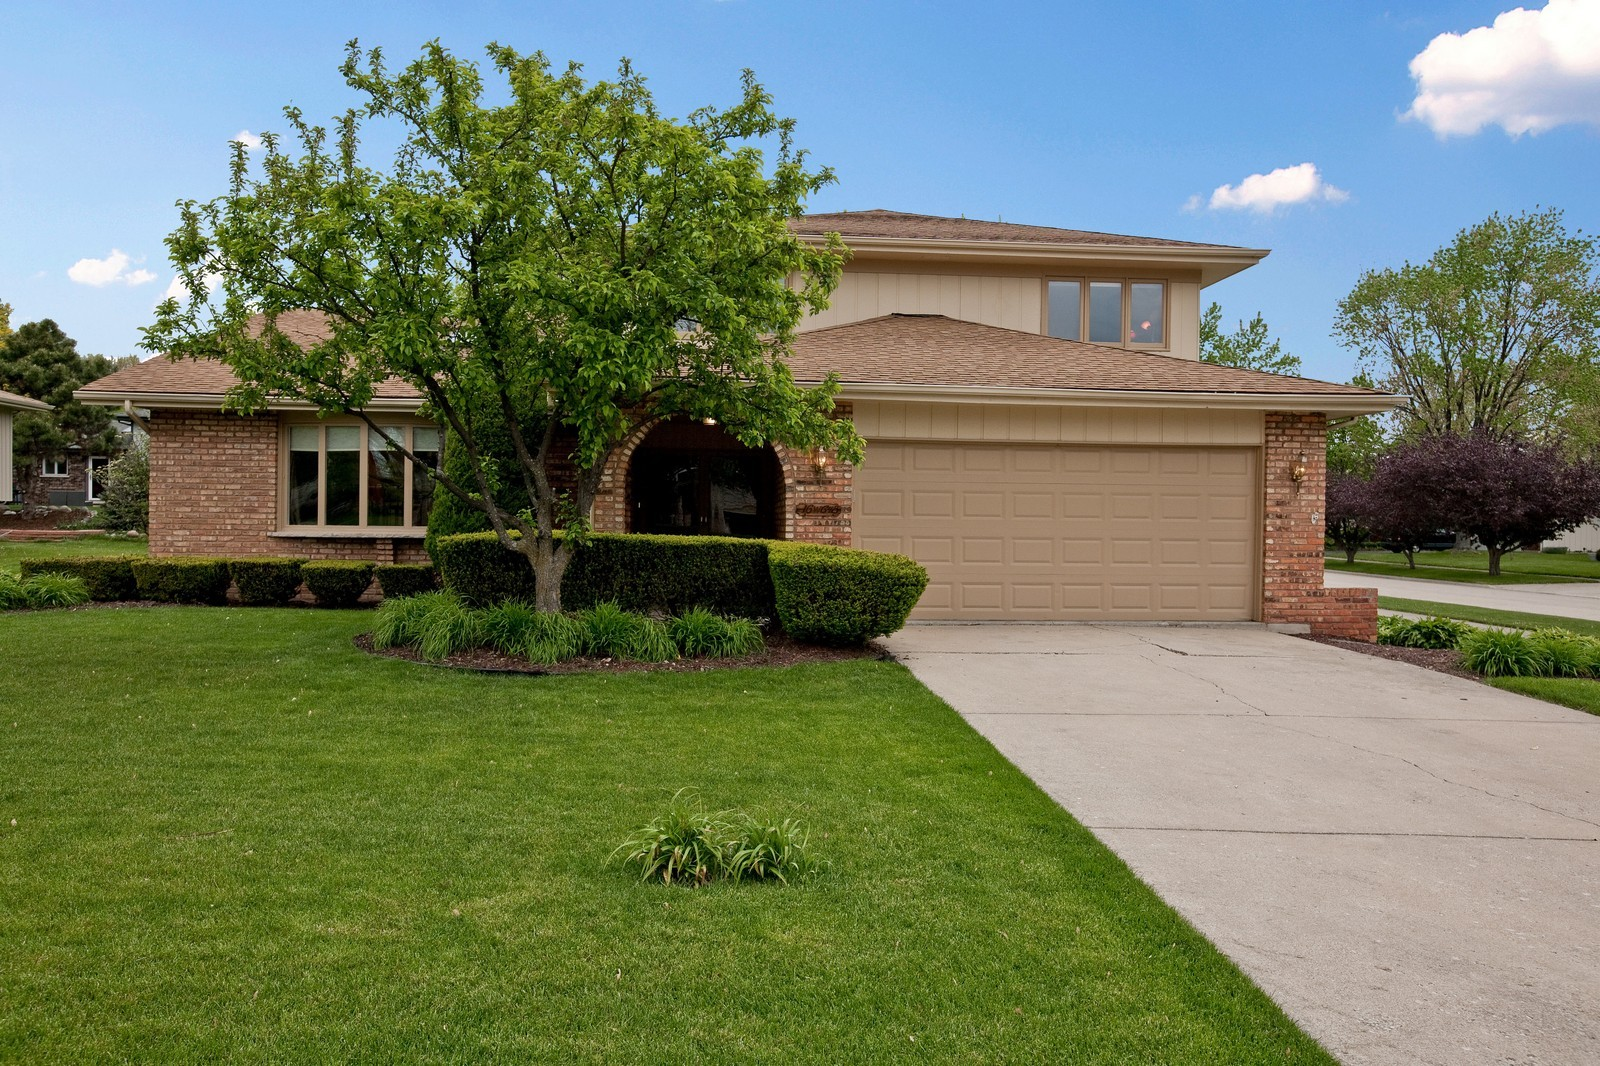 Real Estate Photography - 16W648 90th Street, Willowbrook, IL, 60527 - Front View